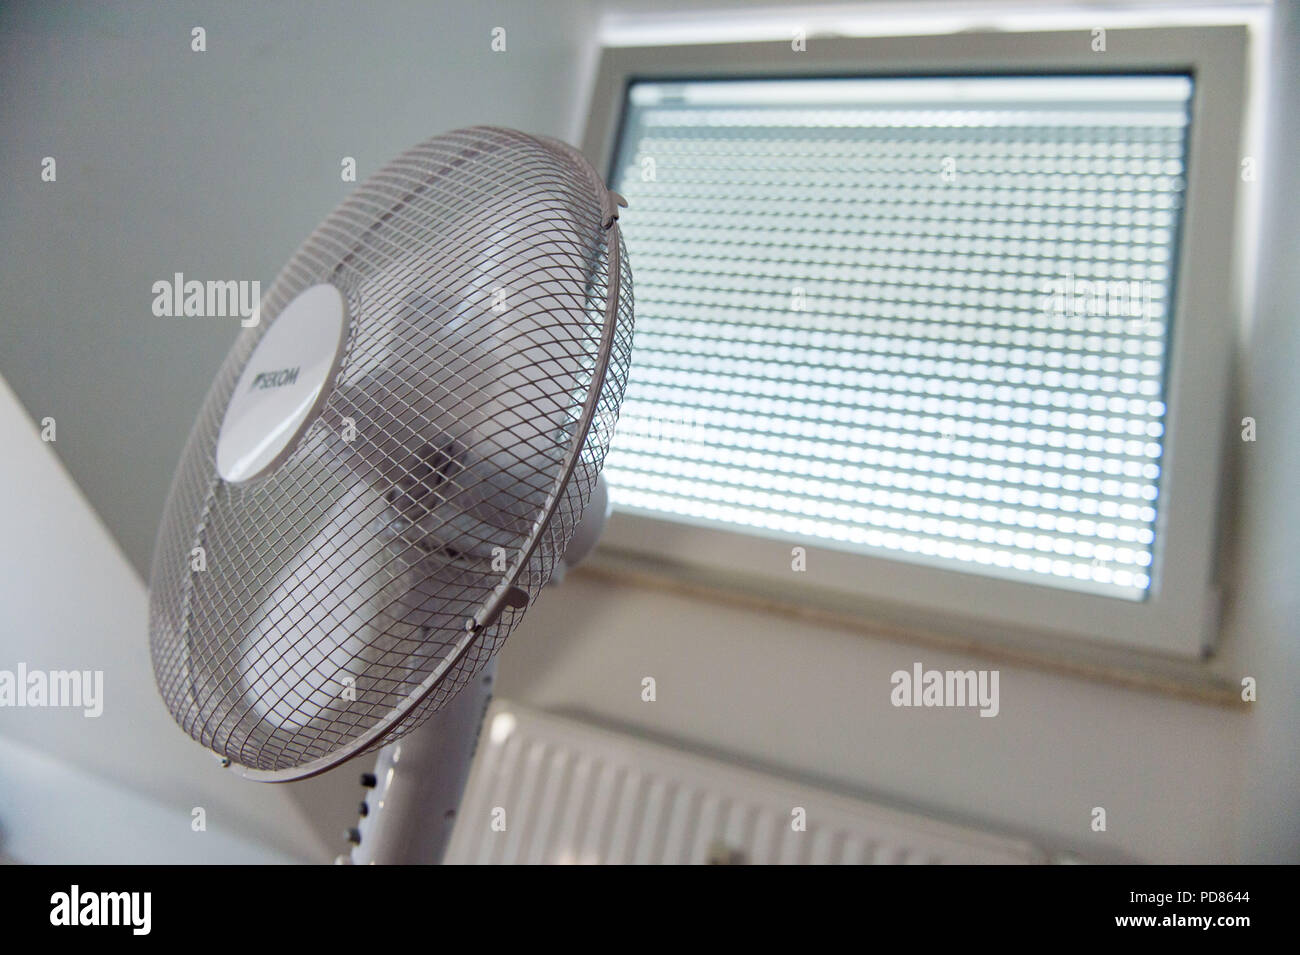 Munich, Germany. 06th Aug, 2018. 06.08.2018, Munich: A fan rotates in front of a tilted window in front of which the roller shutters have been lowered. The persistent heat makes it difficult to stay in the apartment during the day. Credit: Lino Mirgeler/dpa/Alamy Live News - Stock Image